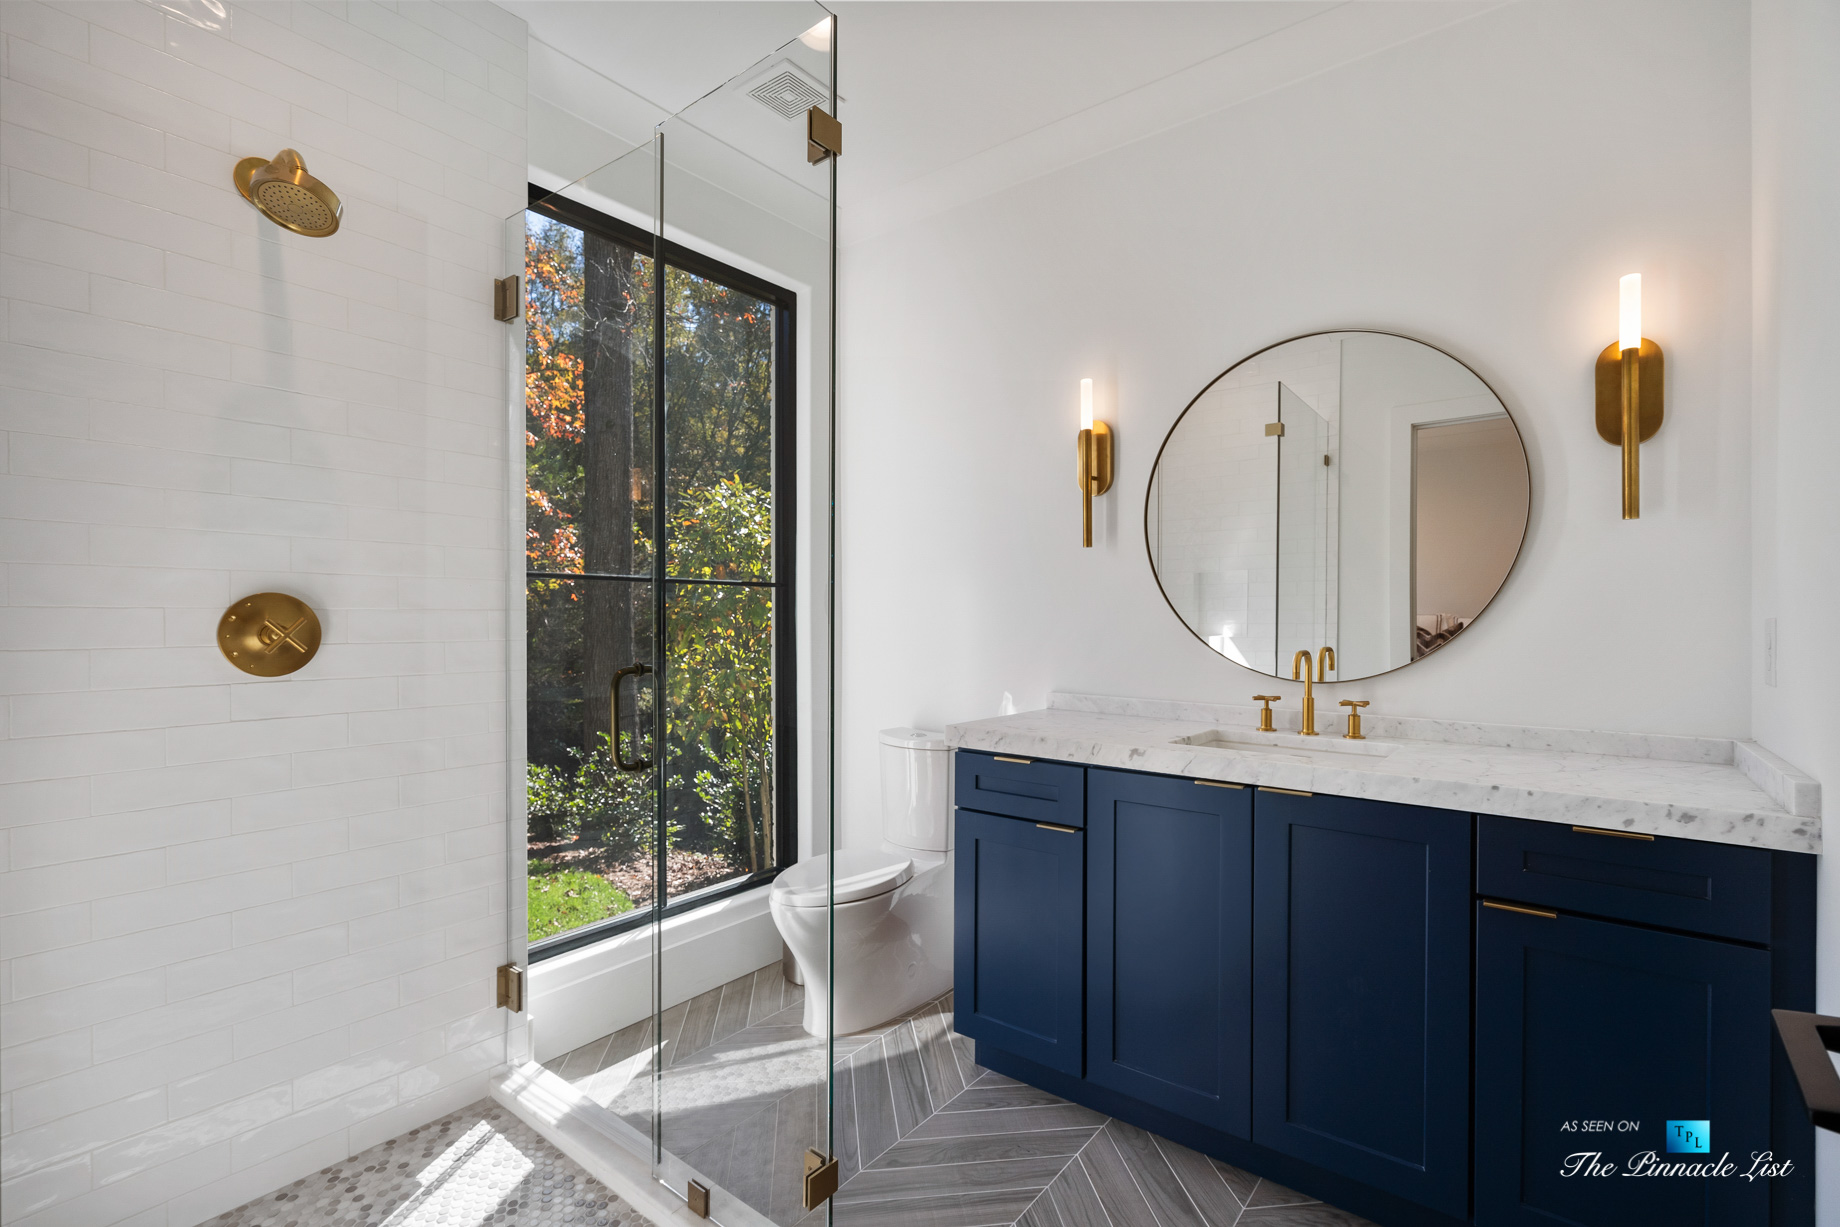 447 Valley Rd NW, Atlanta, GA, USA - Bathroom and Shower - Luxury Real Estate - Tuxedo Park Home